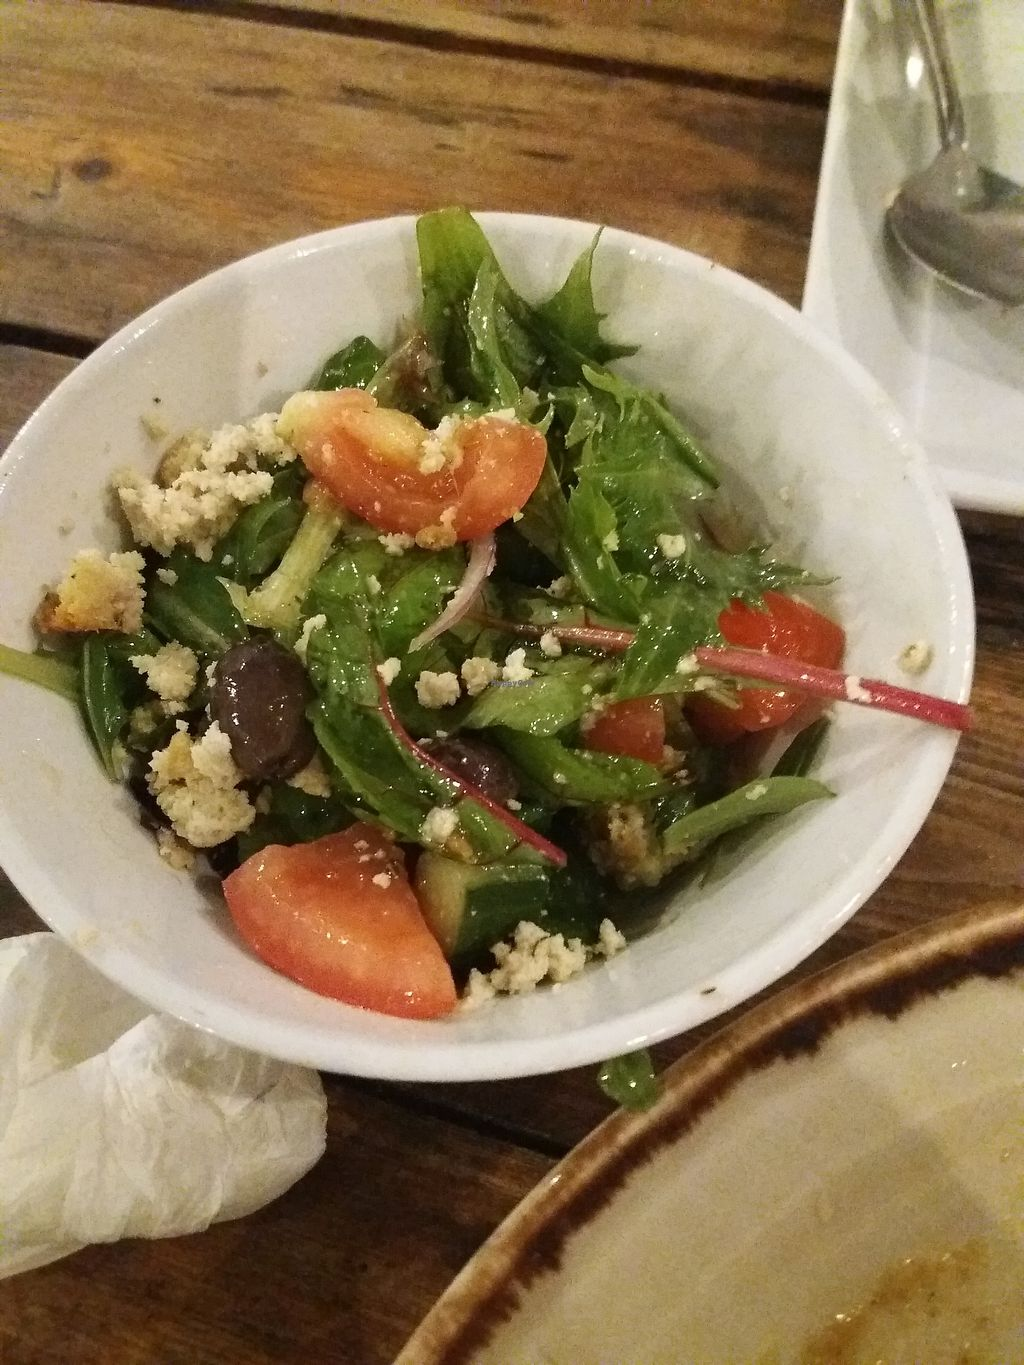 """Photo of Lentil As Anything - Thornbury  by <a href=""""/members/profile/veganvirtues"""">veganvirtues</a> <br/>Polenta salad <br/> October 15, 2017  - <a href='/contact/abuse/image/65328/315669'>Report</a>"""